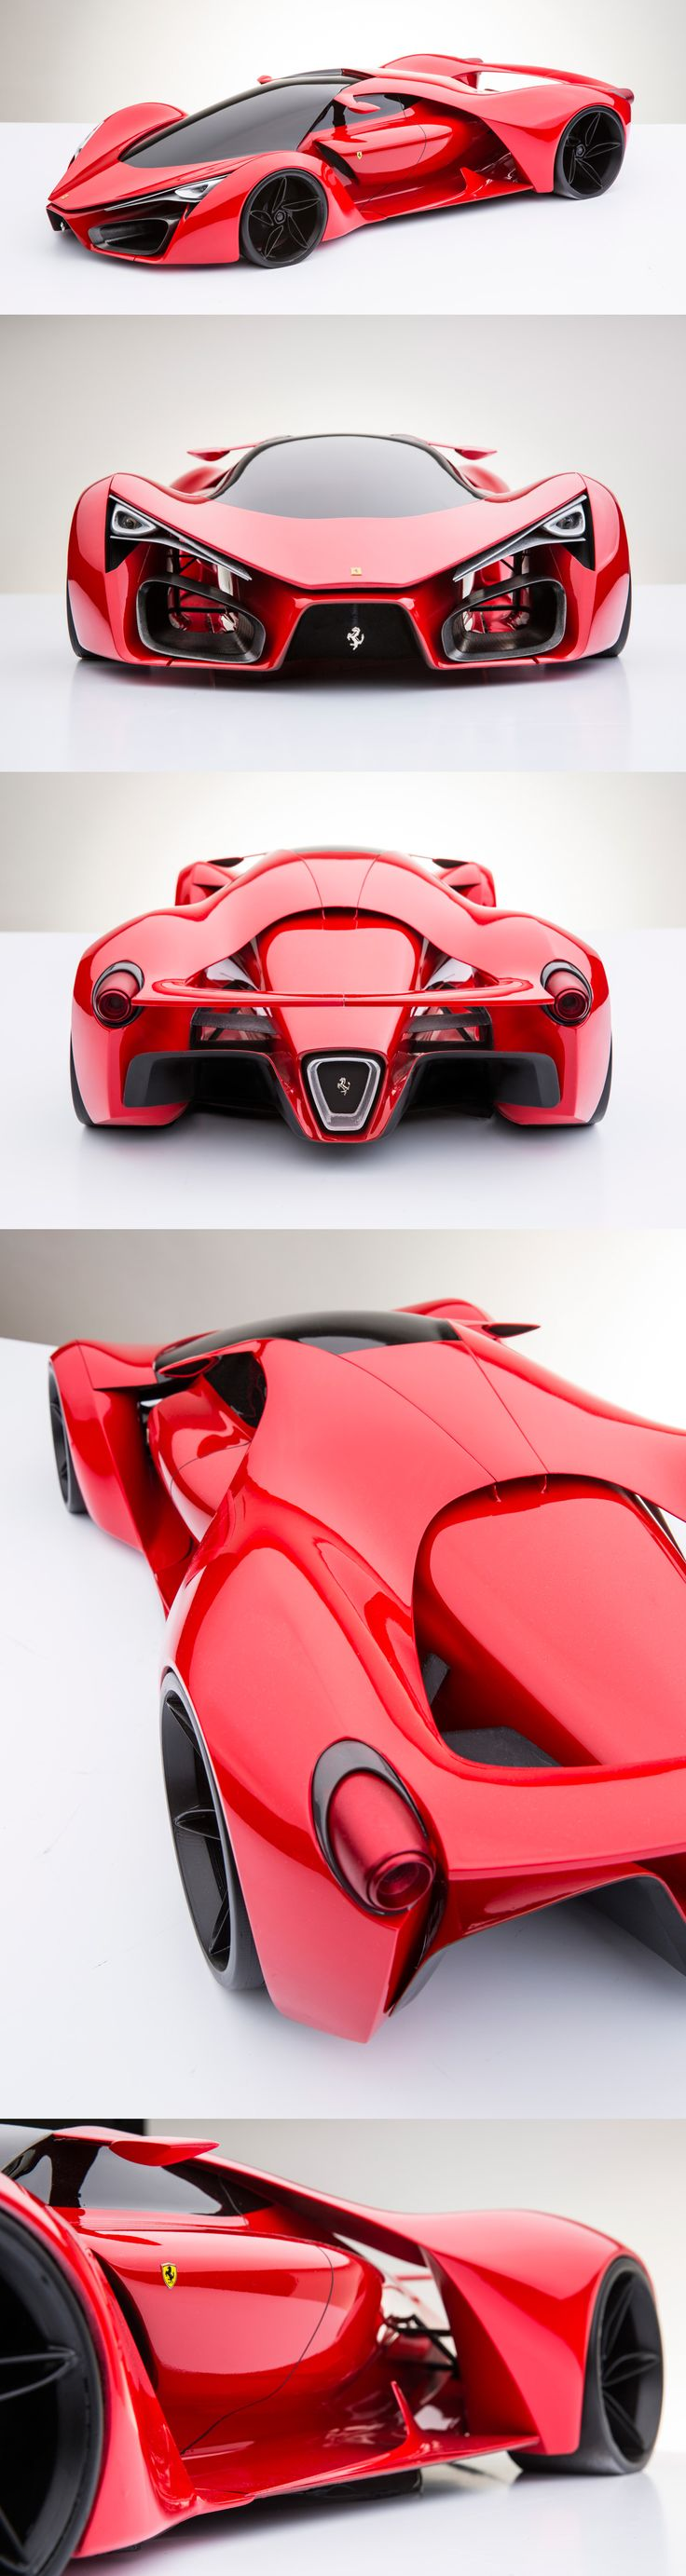 So cool! This Ferrari concept is mind blowing. Click to see more. #autoawesome